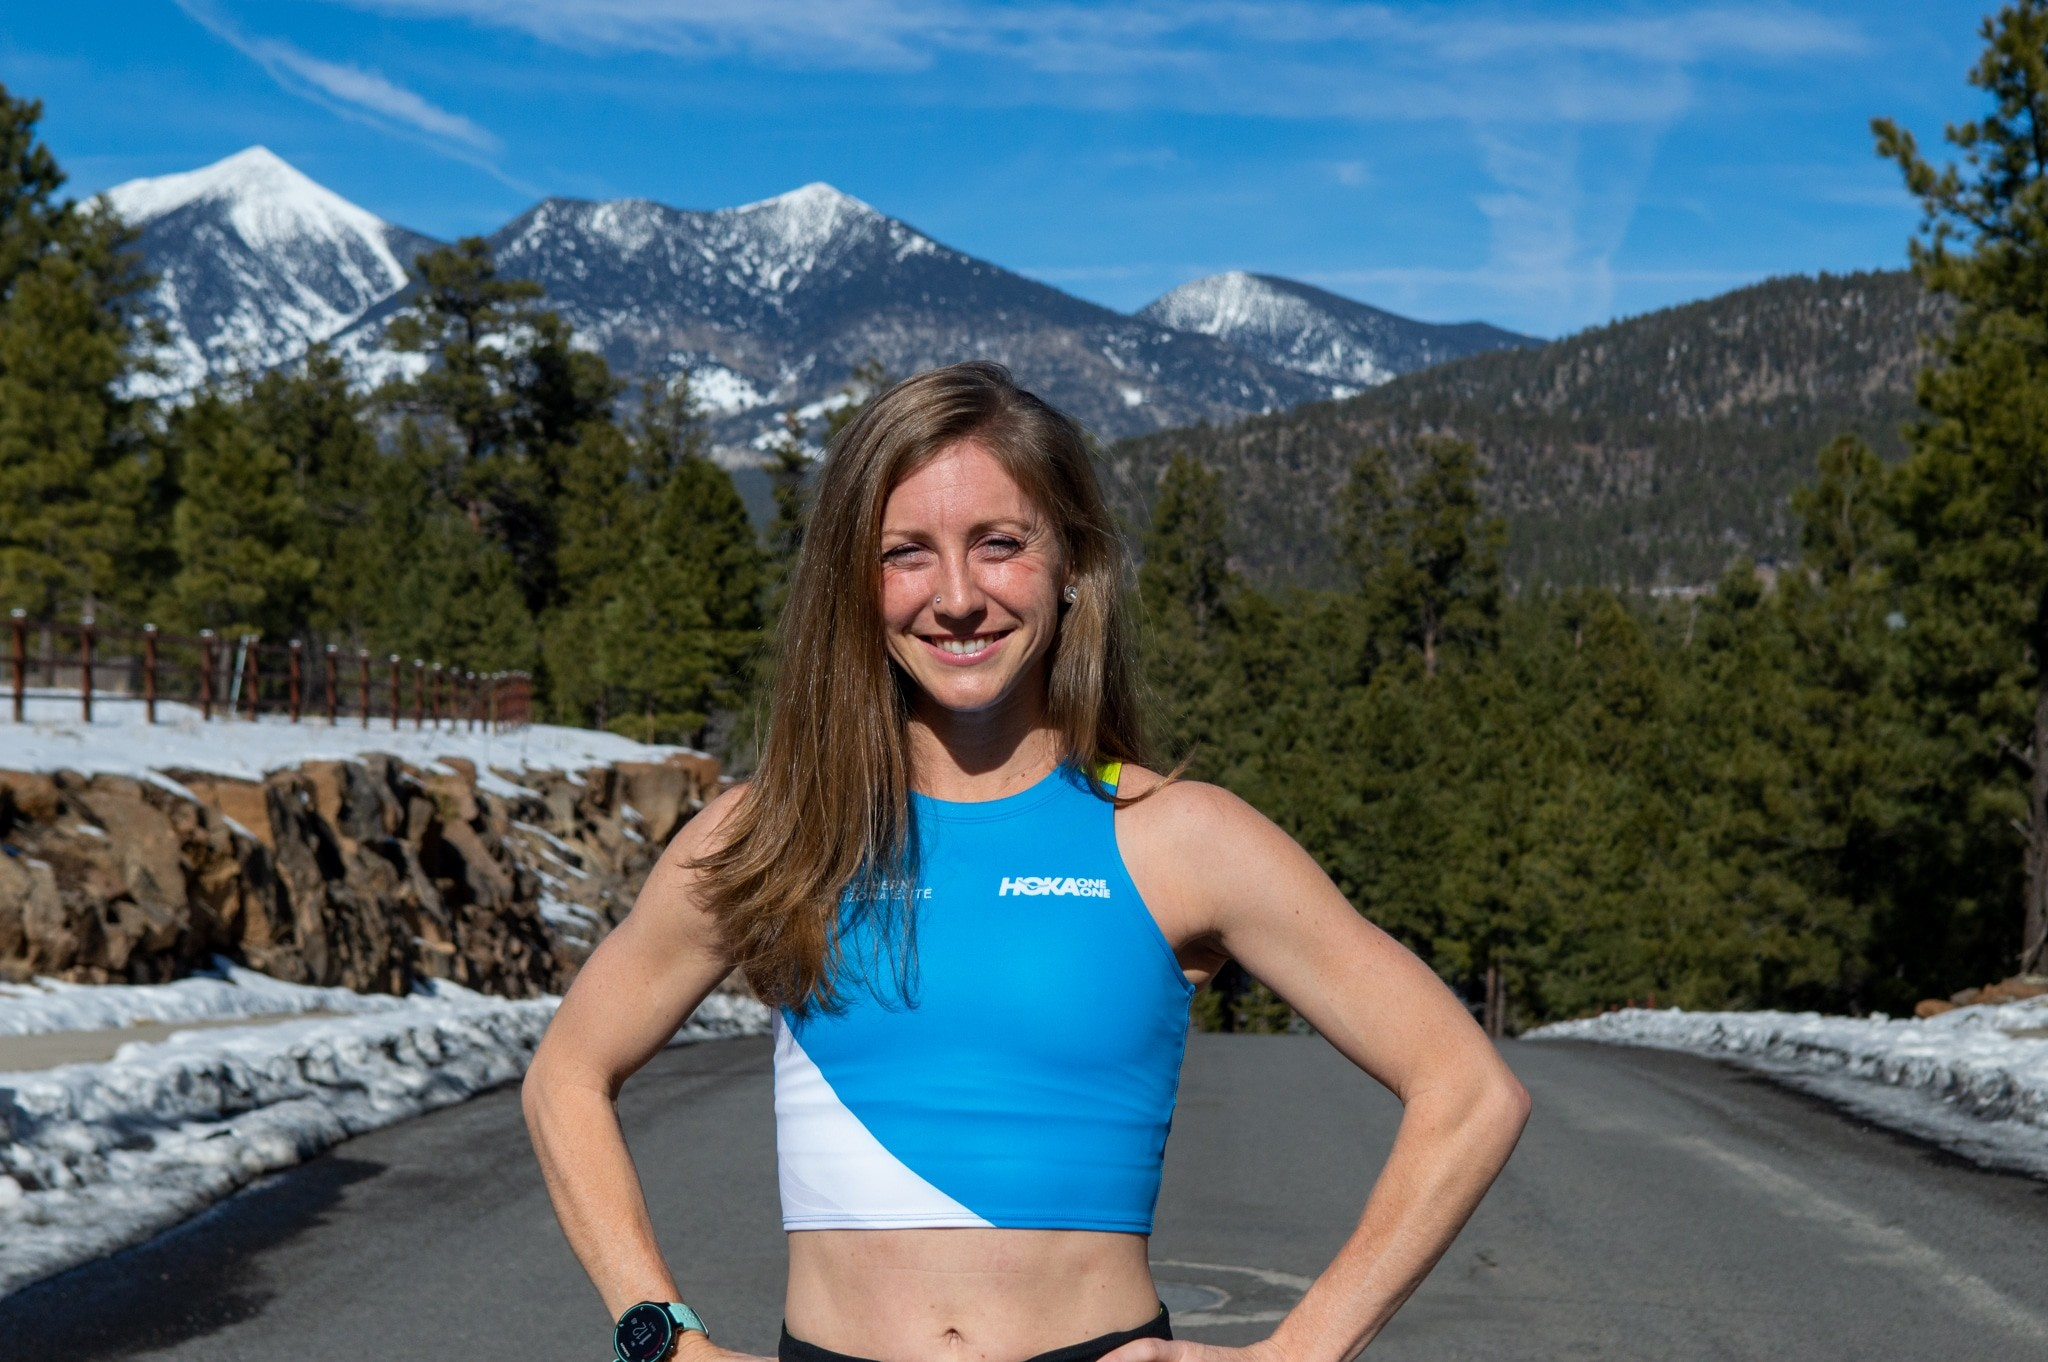 HOKA ONE ONE Northern Arizona Elite has announced that Lauren Paquette has joined their team